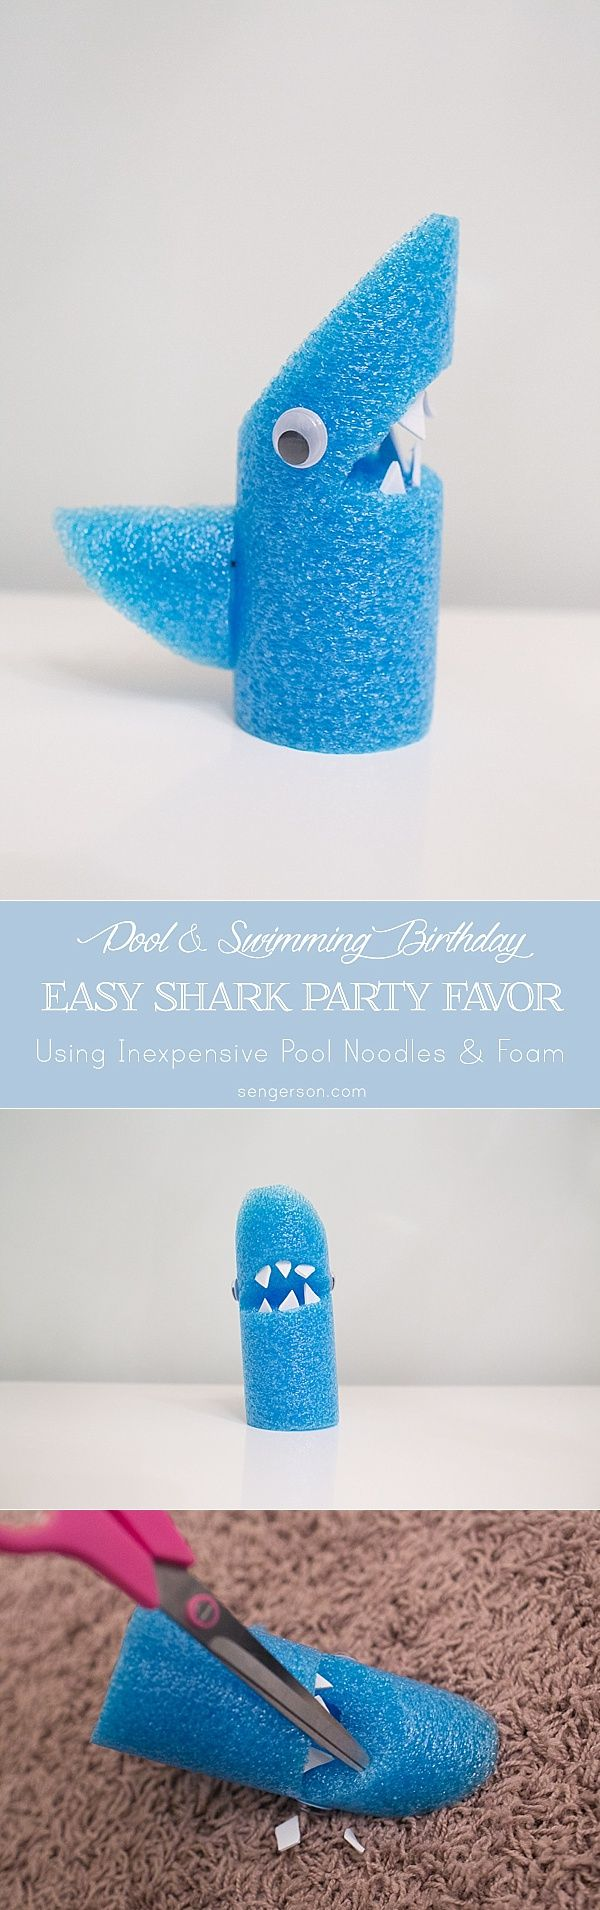 Shark themed party favor and shark themed party decor ideas for a fun party! Pool Noodle Shark idea!